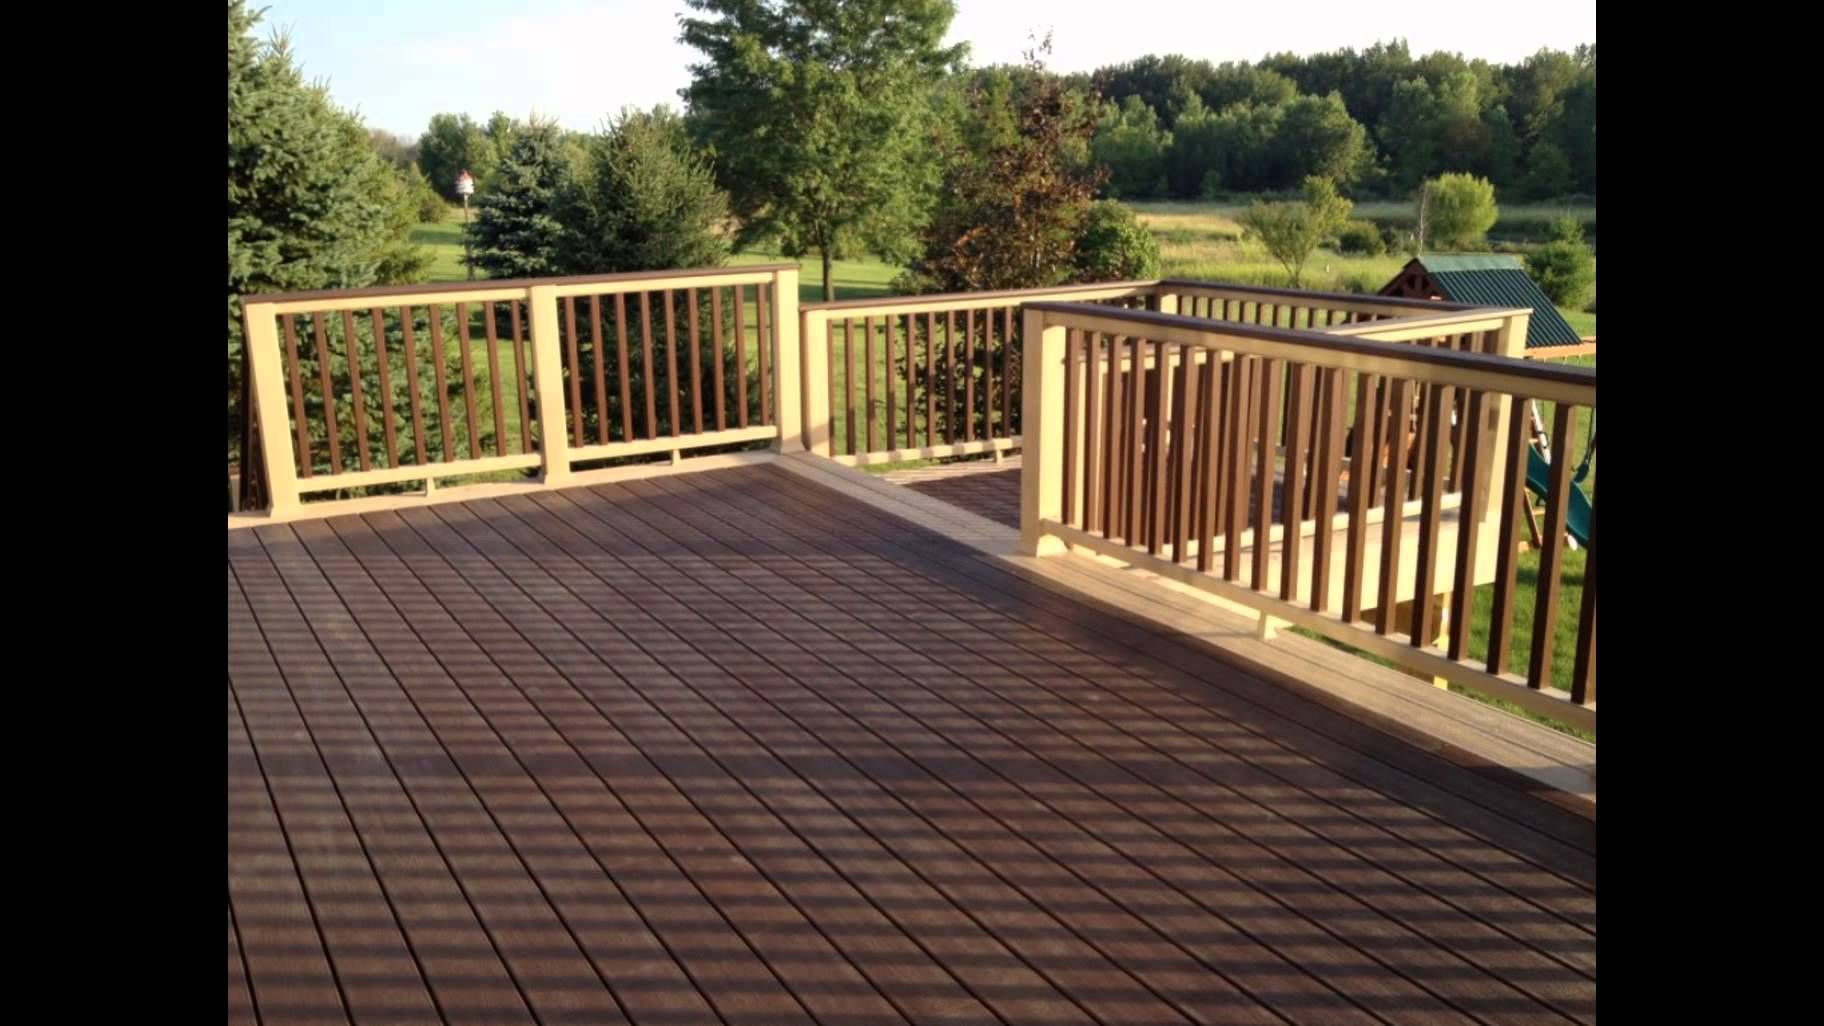 Did you know that late spring/early summer is the best time of the year to #StainYourDeck? http://defywoodstain.com/ask-questions-defy-stains/